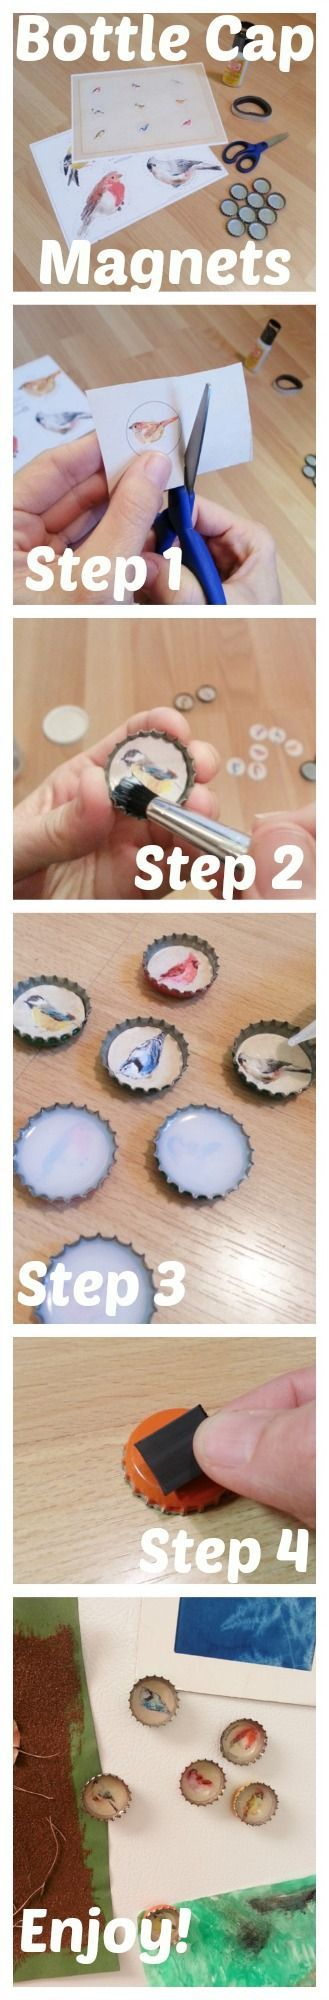 #Organize Your Life With Custom Bottle Cap Magnets for Your Fridge #DIY